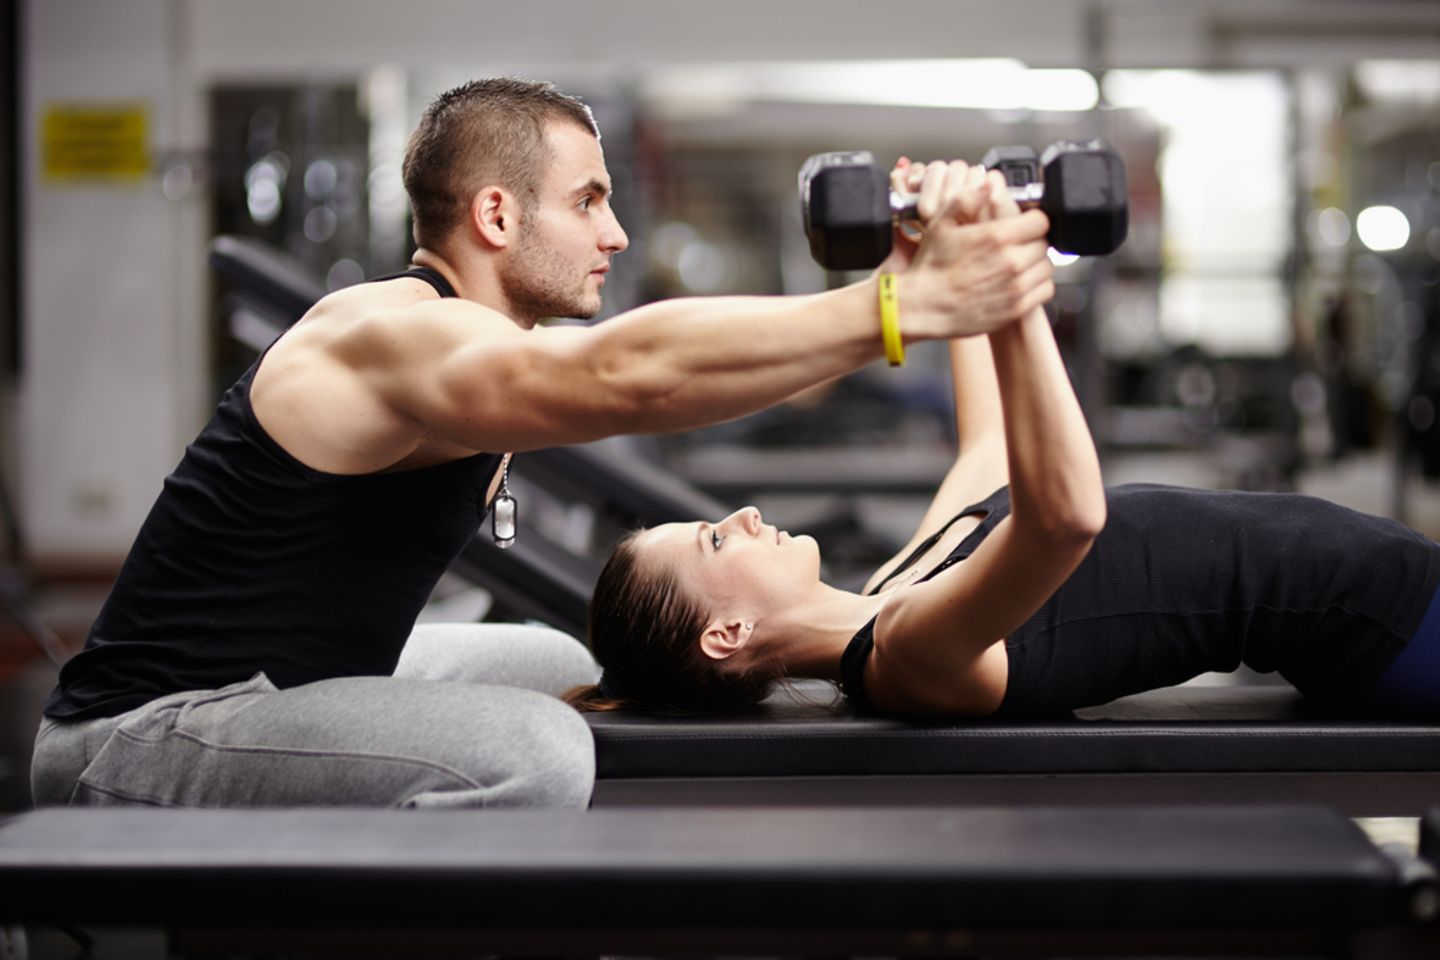 Sportmotivation: Frau mit Personal Trainer